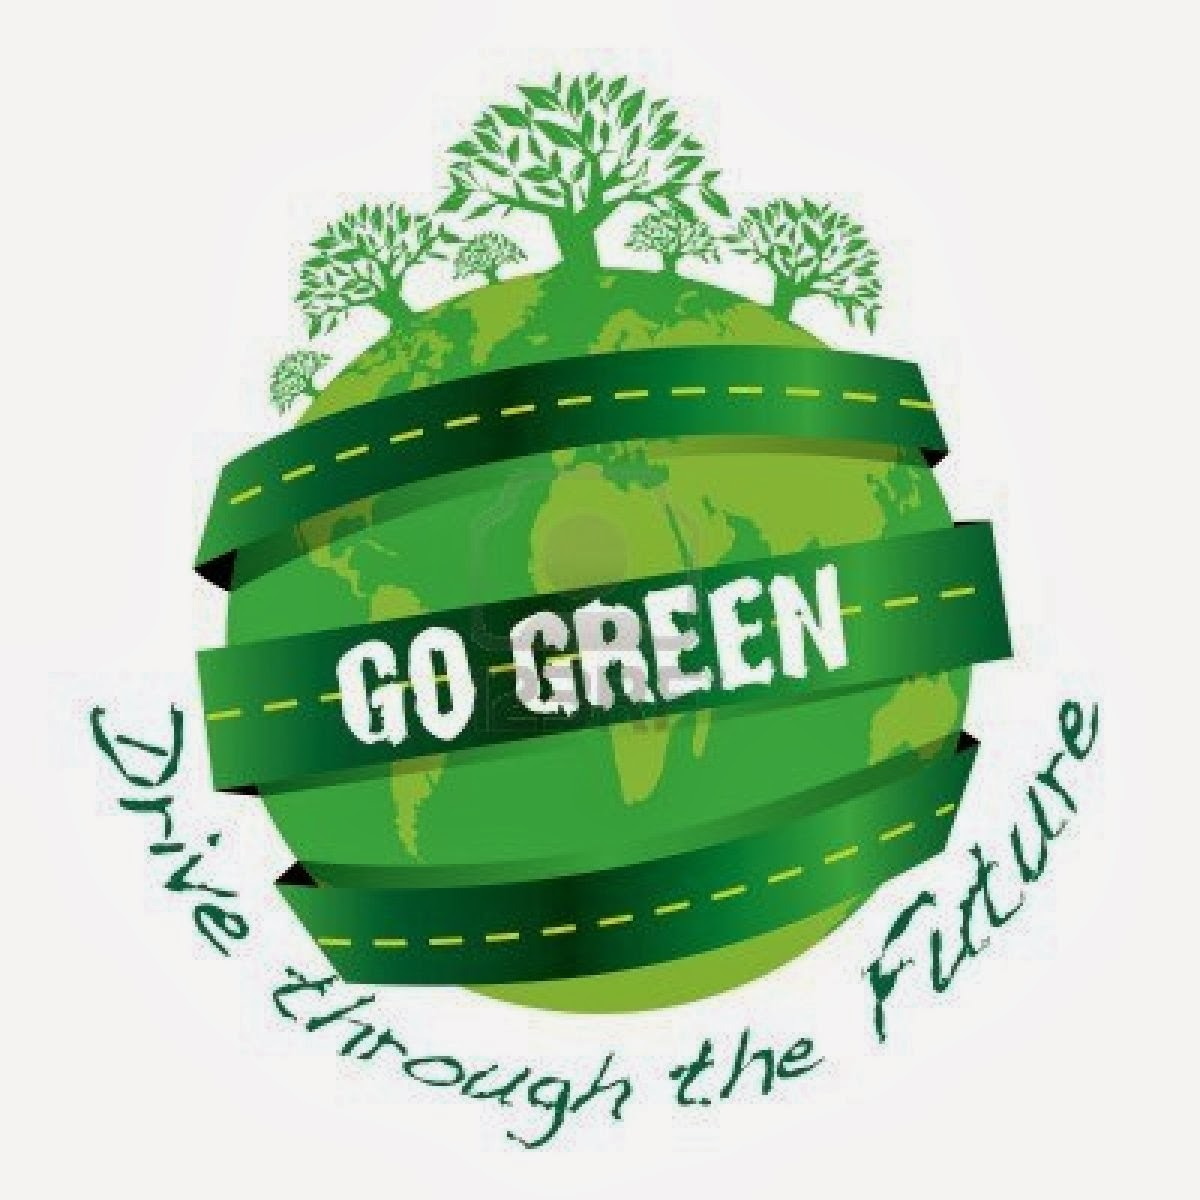 essays on go green save the earth Free essays on essays on go green save the earth get help with your writing 1 through 30.